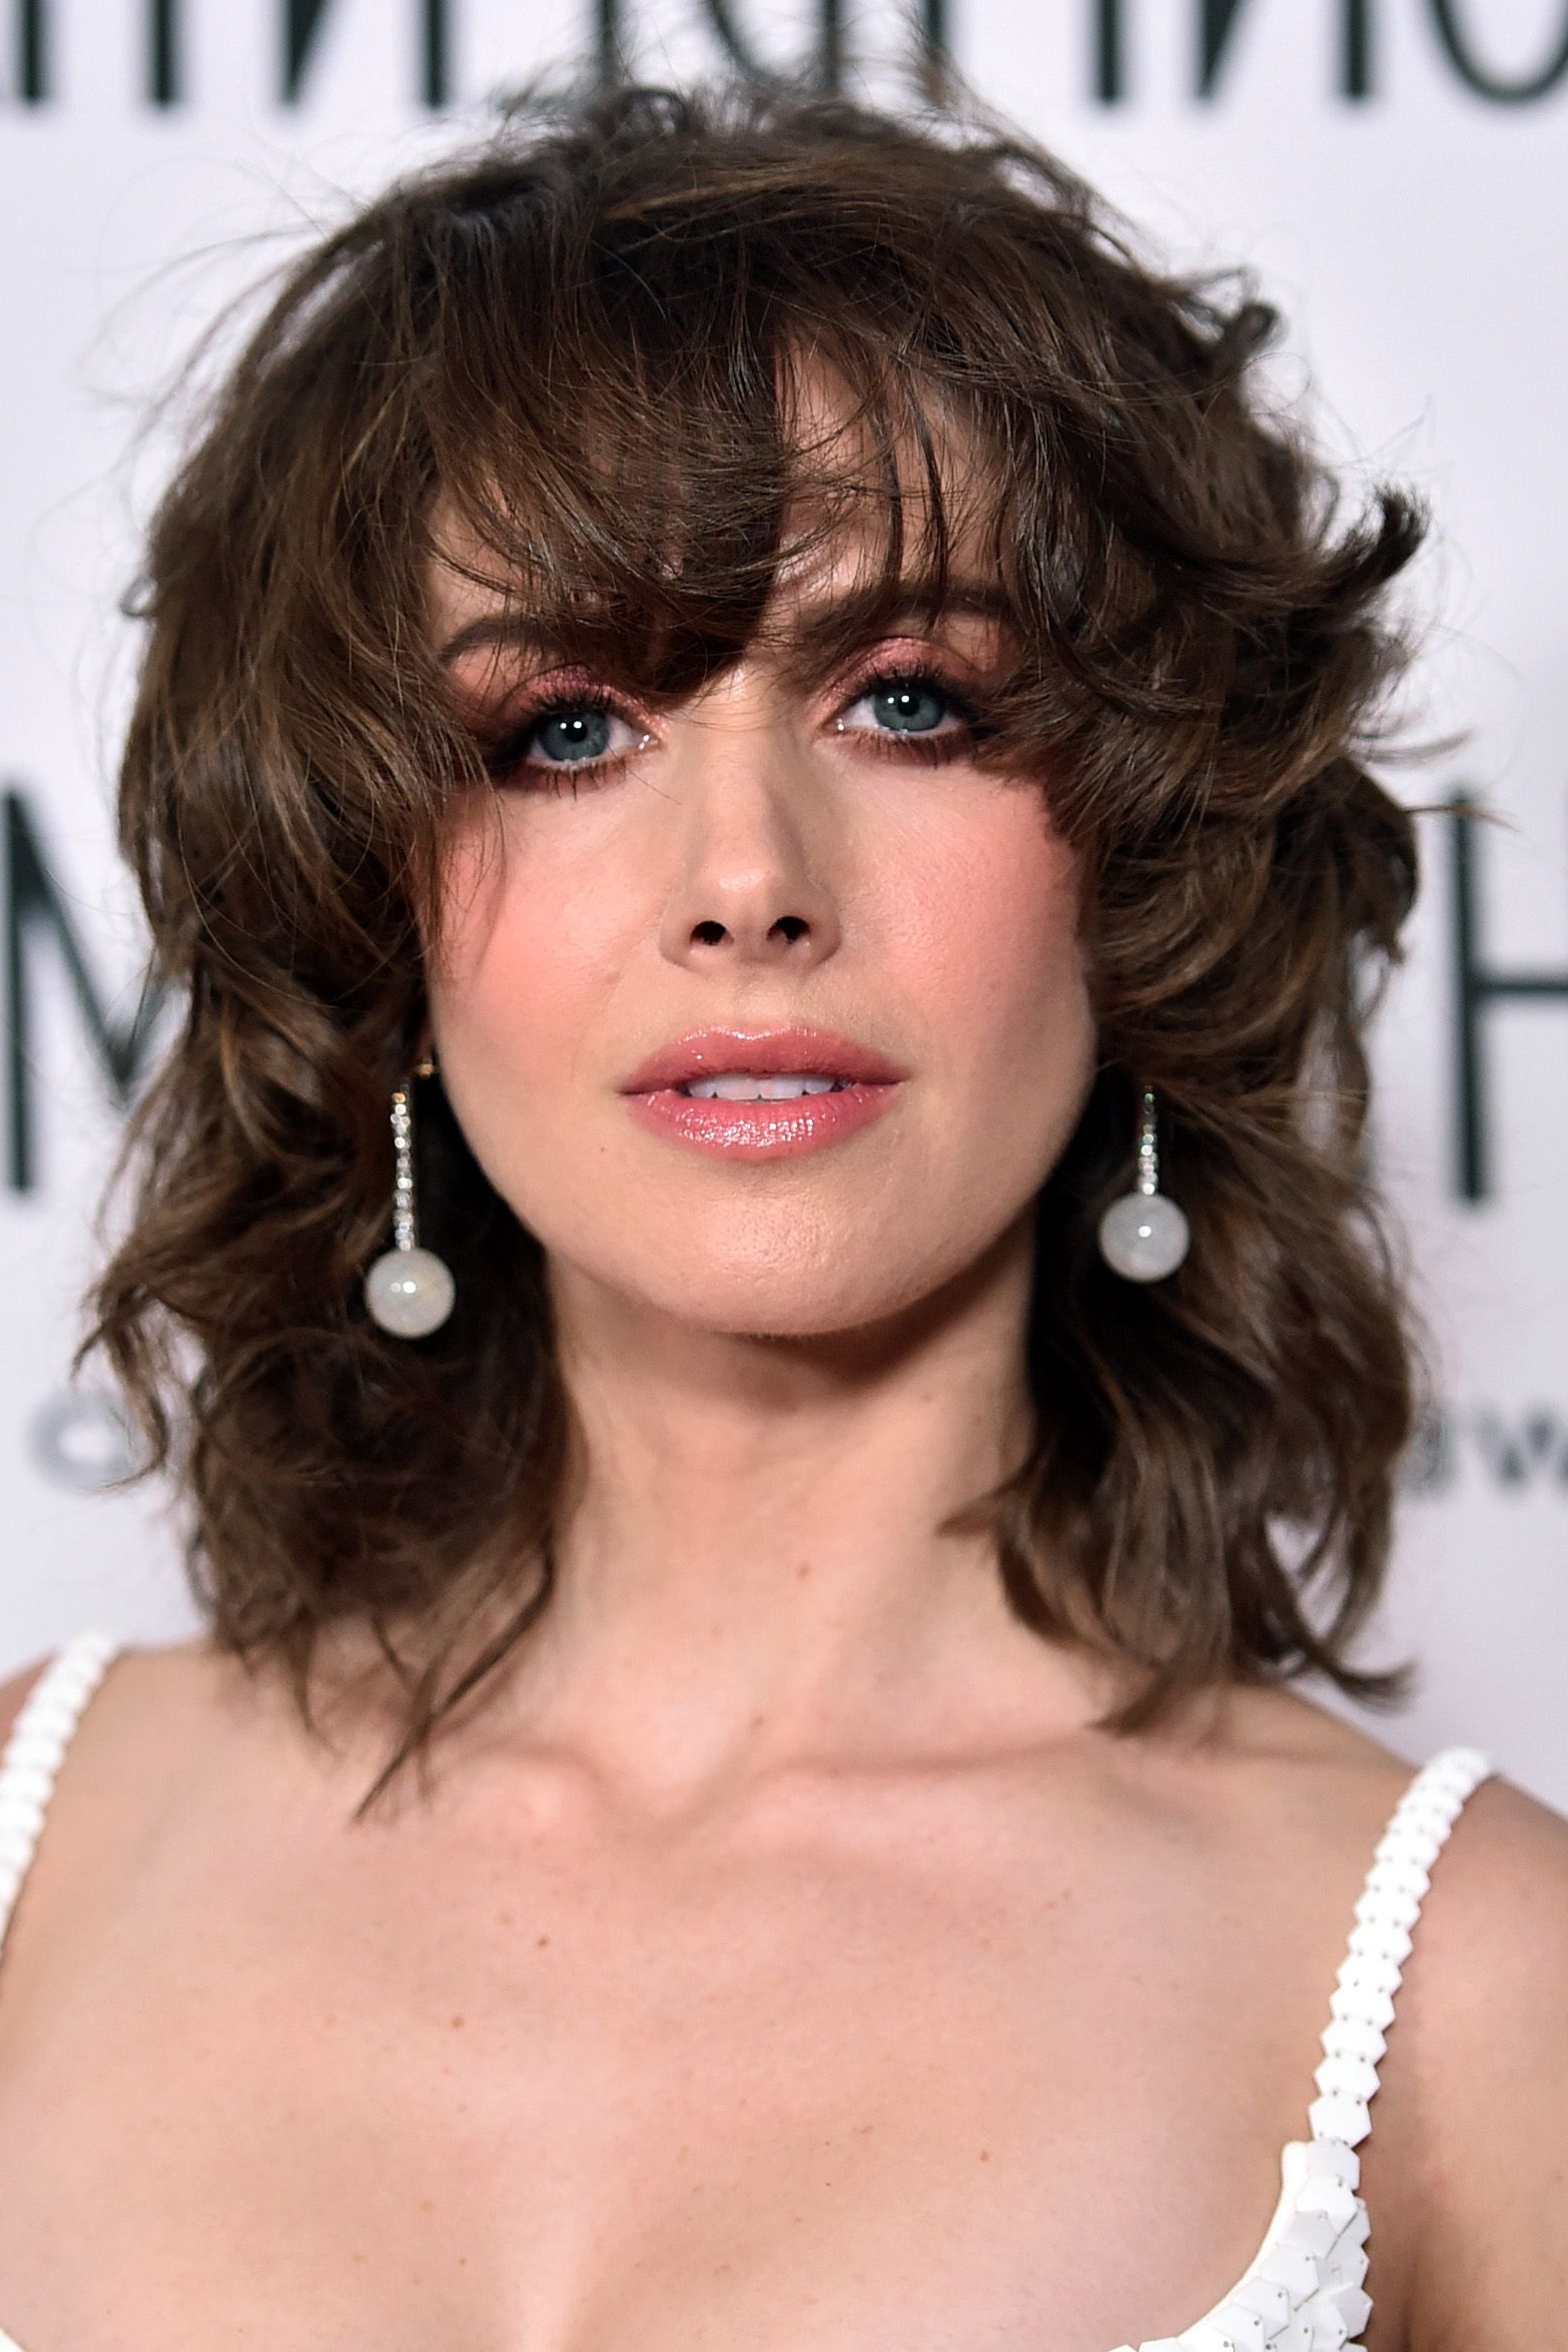 35 Best Hairstyles With Bangs – Photos Of Celebrity Haircuts With Bangs With Regard To Most Recently Released Voluminous Wavy Layered Hairstyles With Bangs (Gallery 15 of 20)